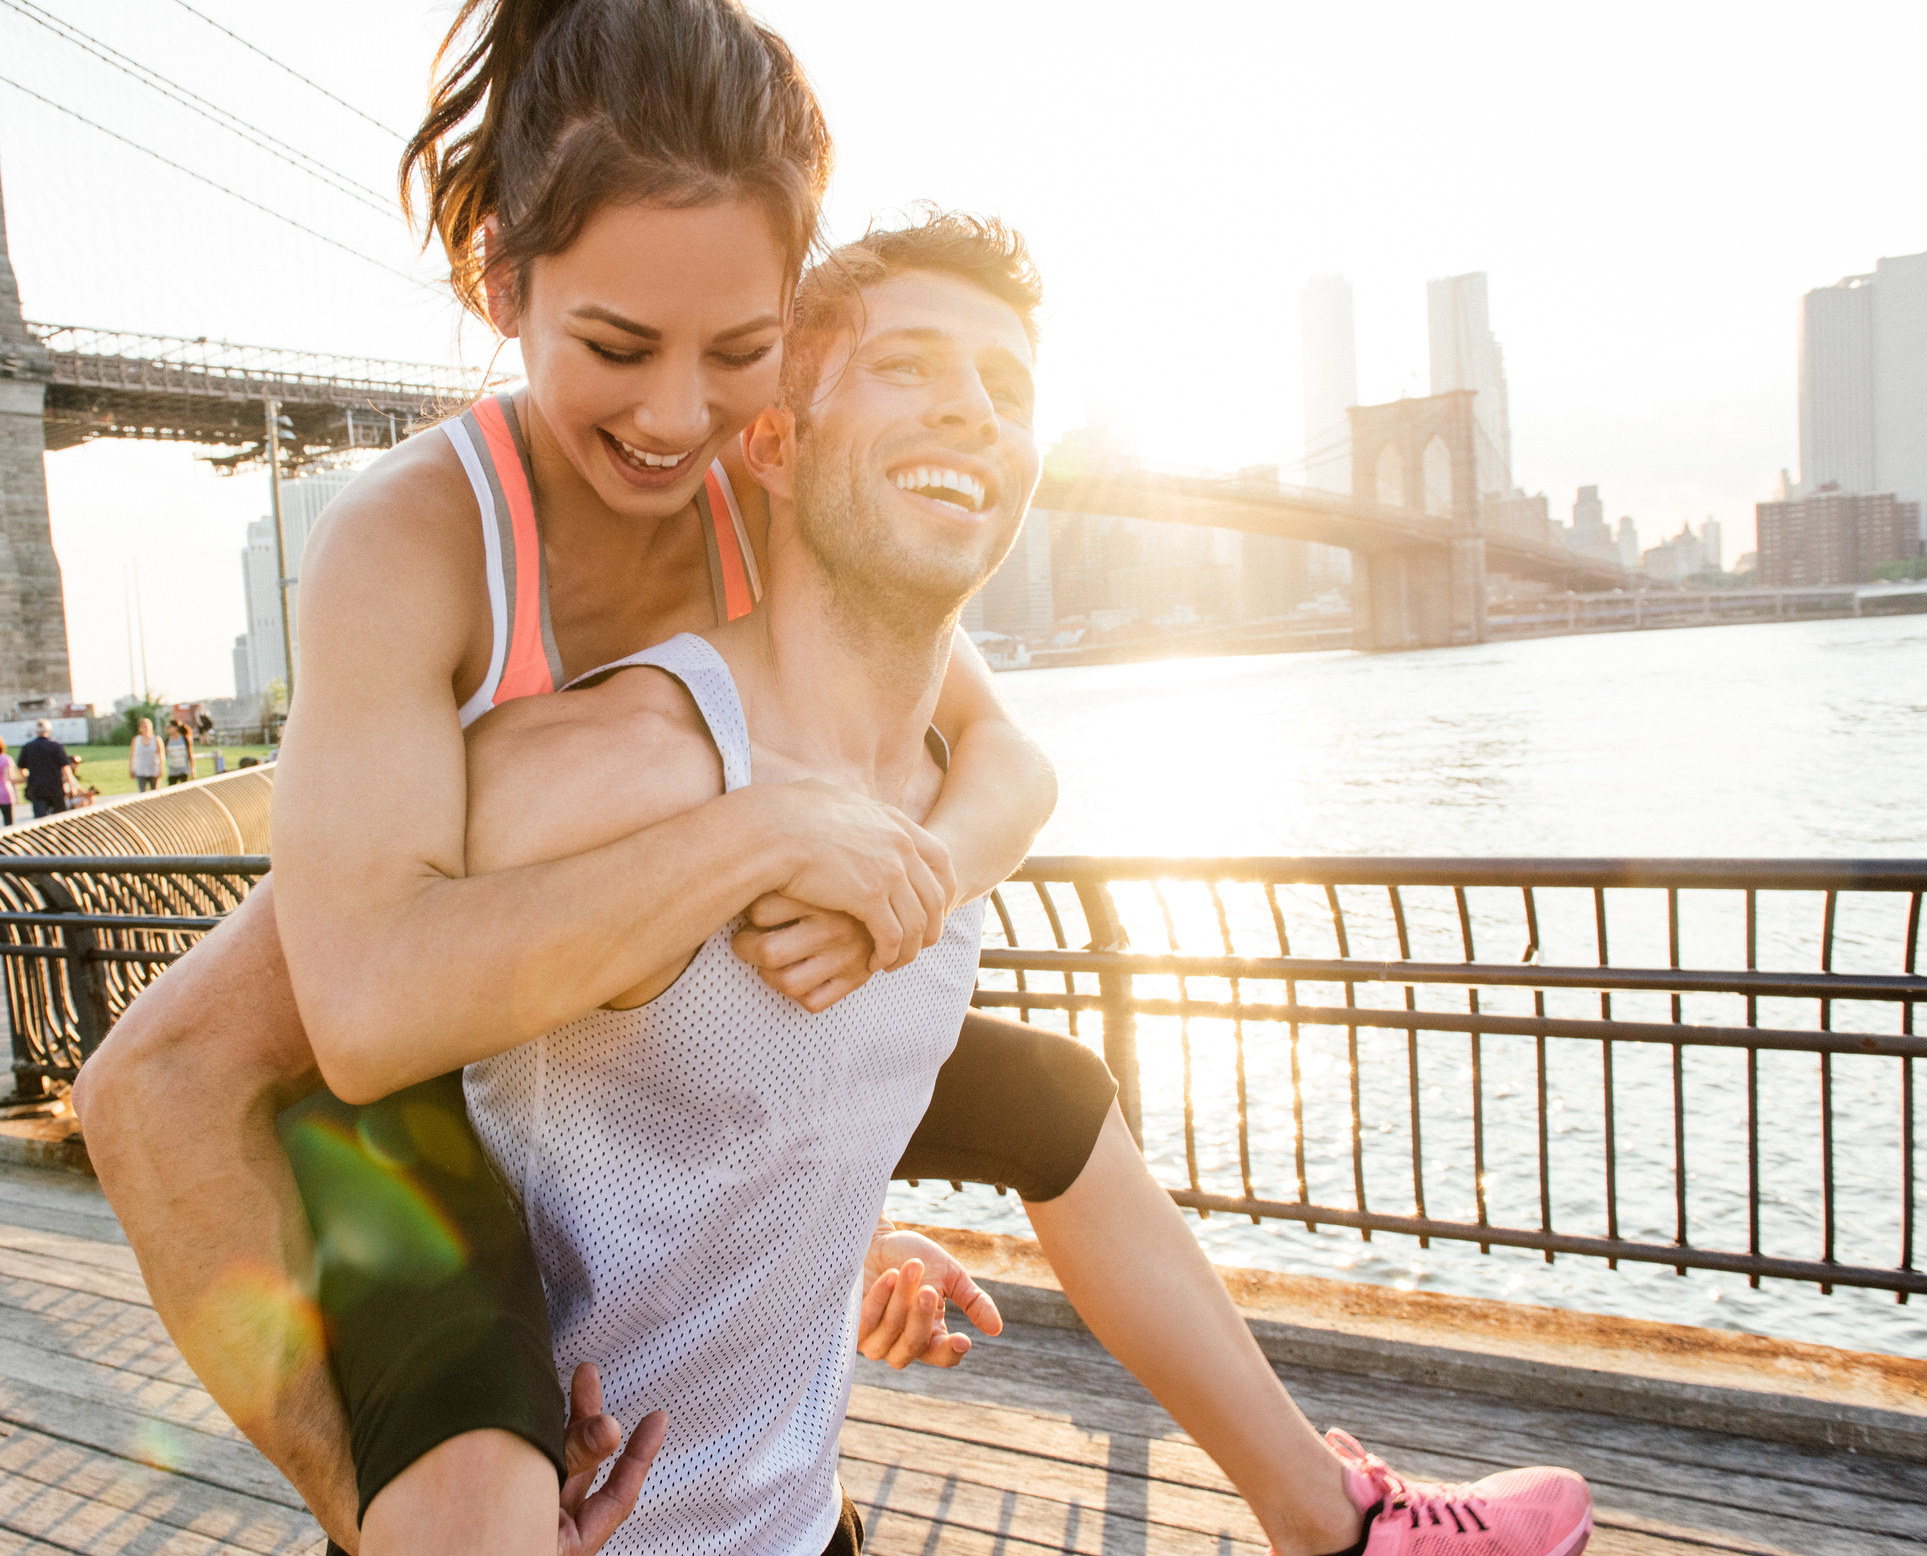 A guy giving his girlfriend a piggyback ride as they exercise